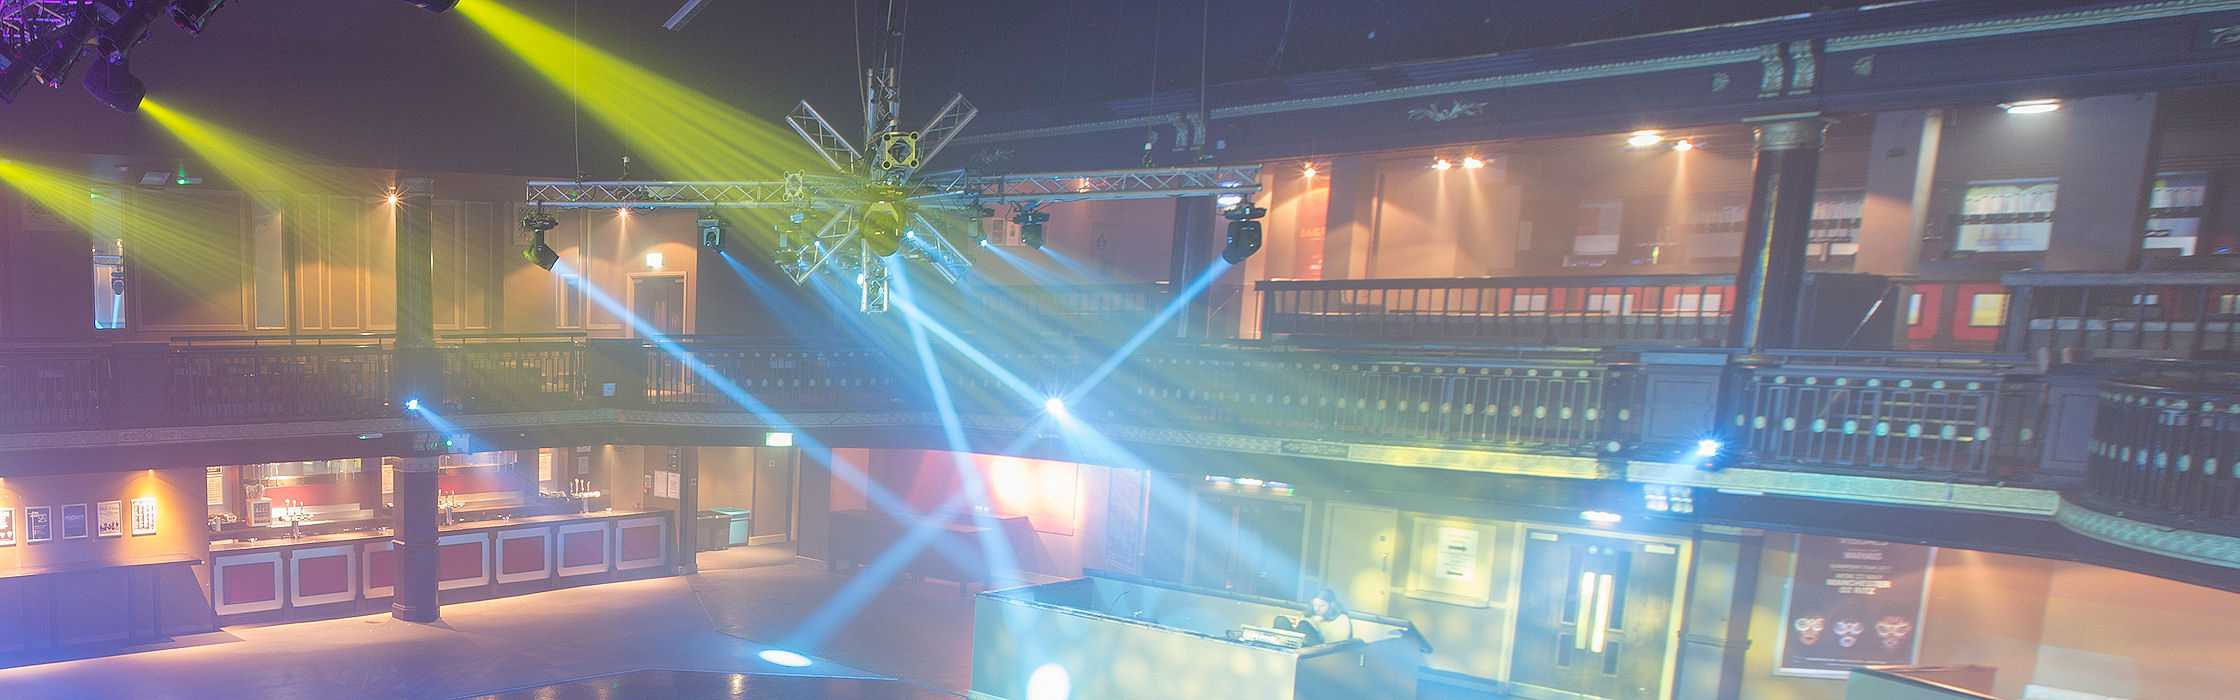 O2 RITZ, MANCHESTER : WHAT'S ON GUIDE